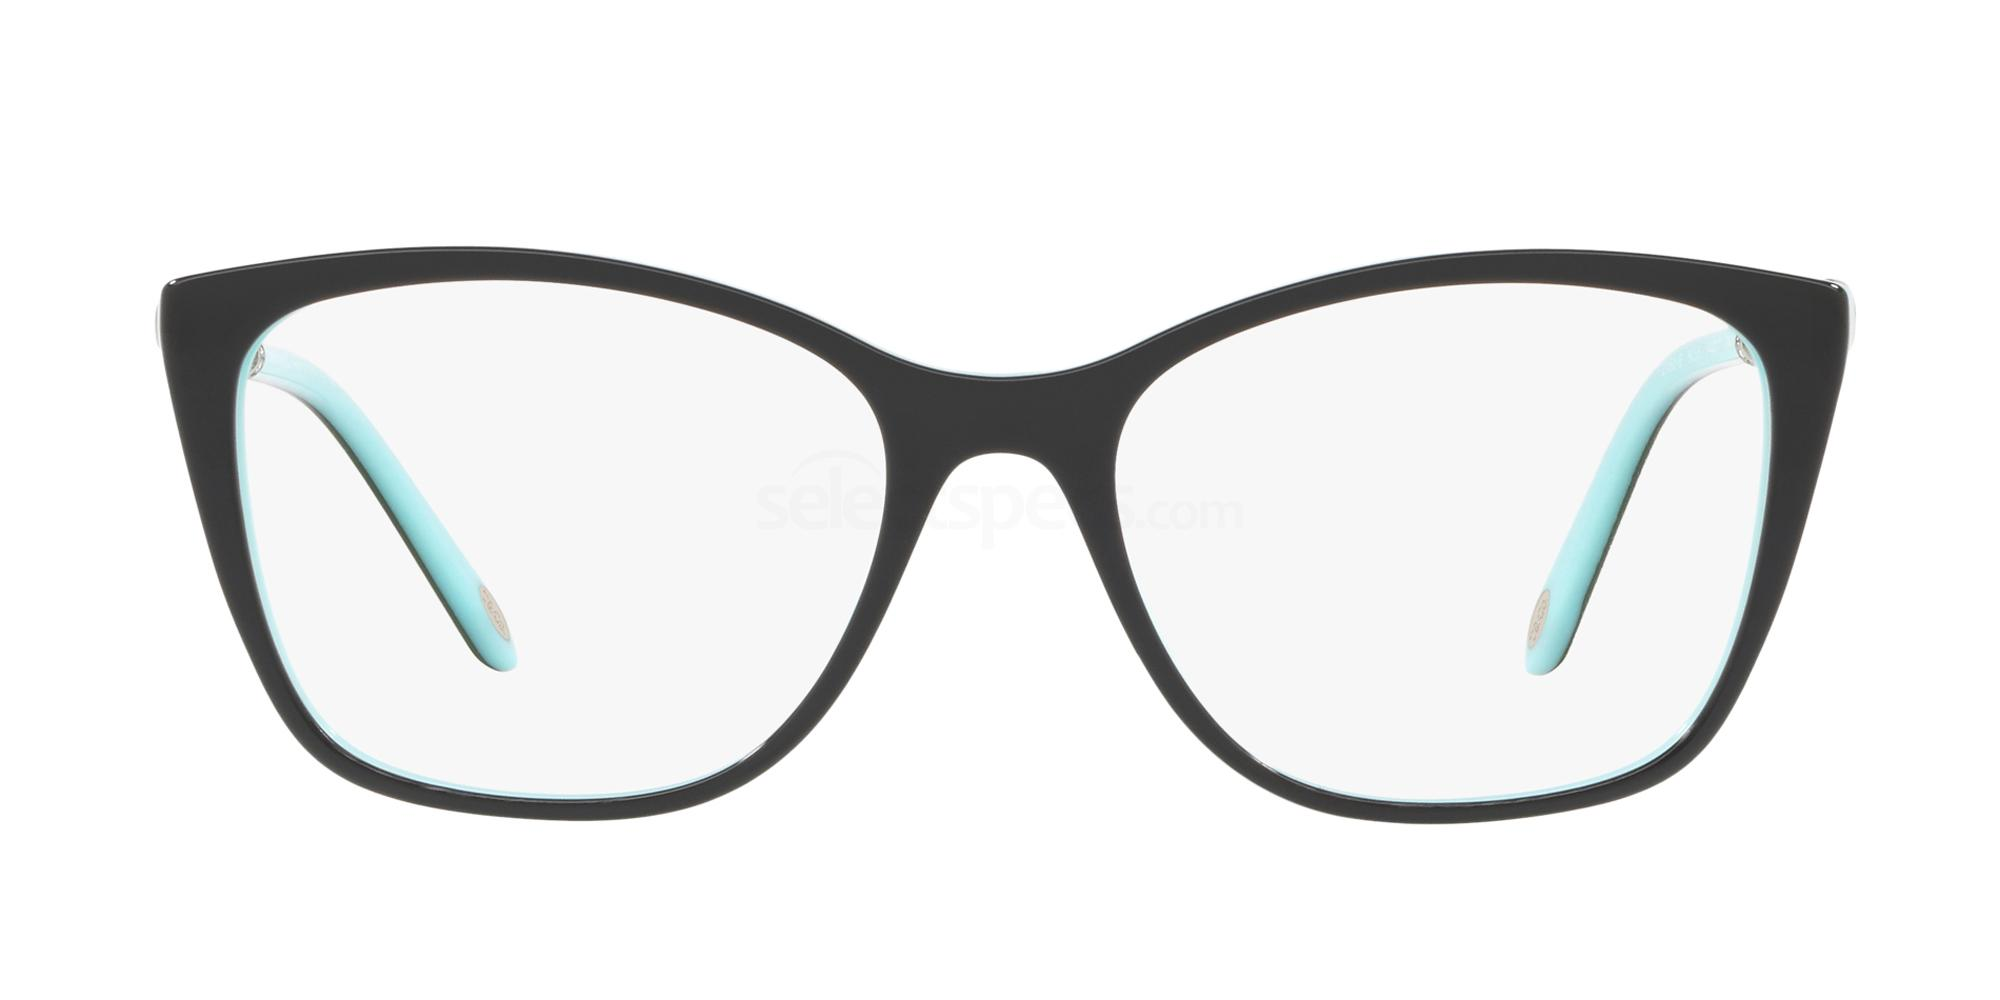 8055 TF2160B Glasses, Tiffany & Co.